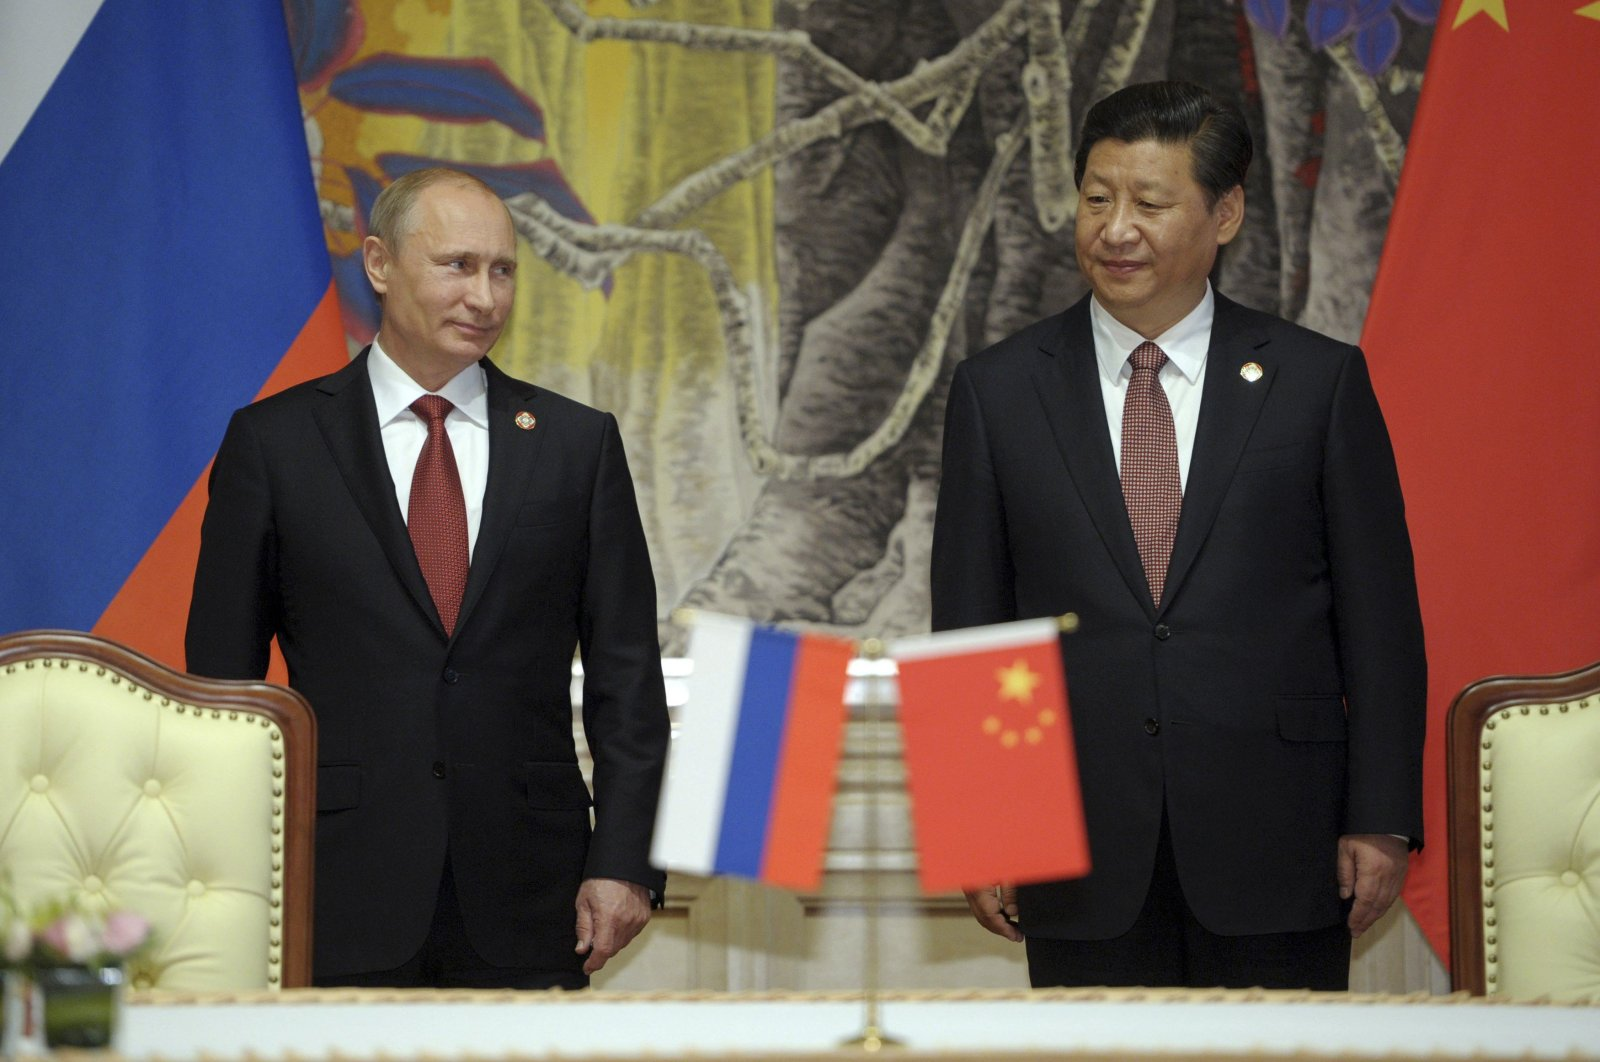 Russia's President Vladimir Putin (L) and China's President Xi Jinping attend a signing ceremony in Shanghai, May 21, 2014. (REUTERS Photo)